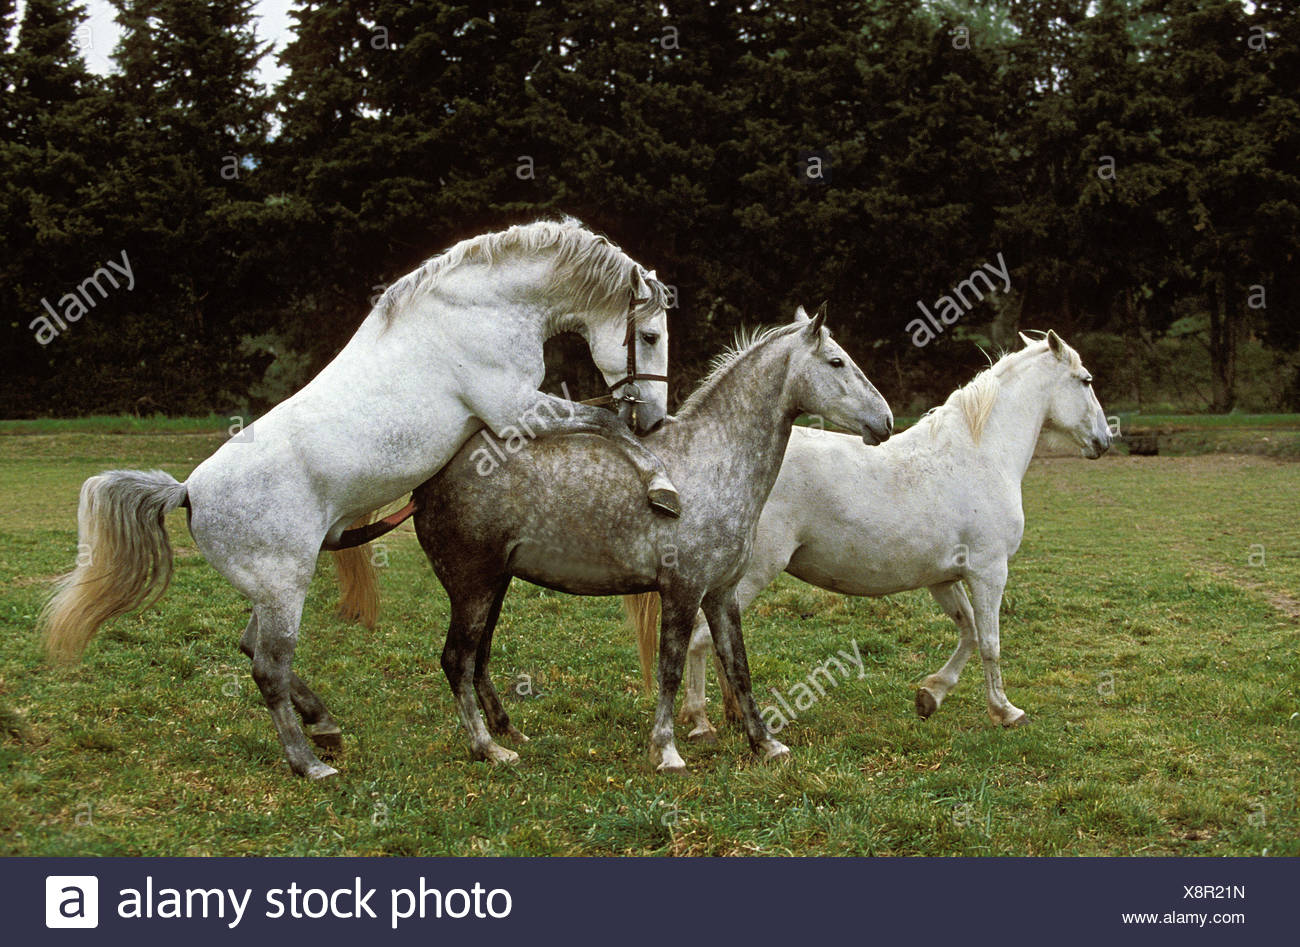 Of Lipizzaner horses,stallion and mare,mating Stock Photo